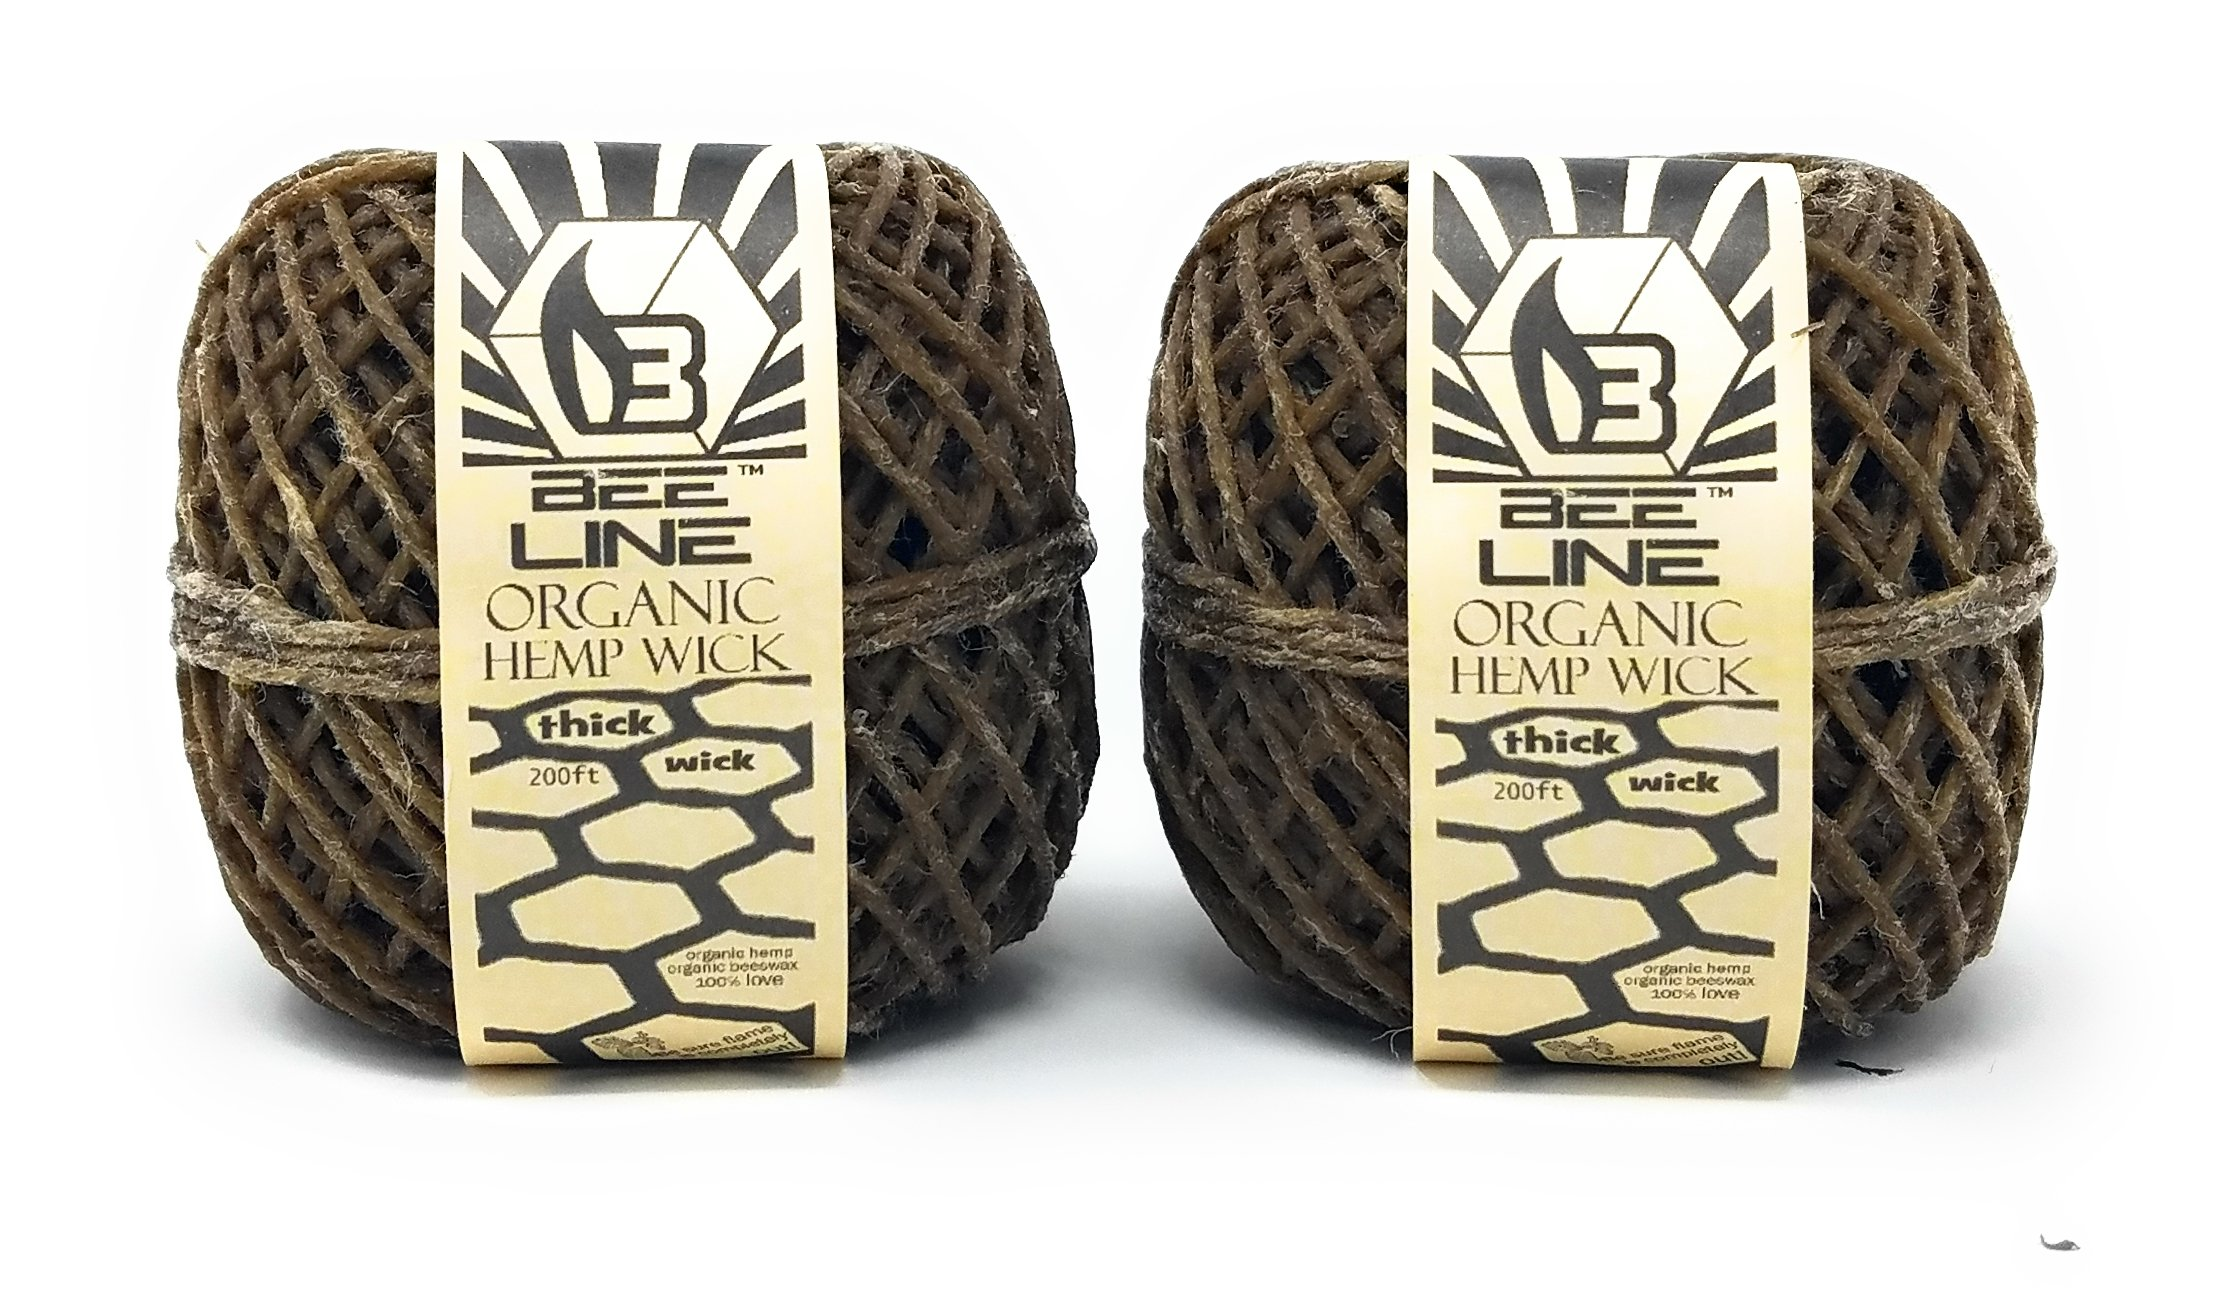 Bee Line Organic Hemp Wick - Thick Gauge 200 FT Spool - 2 Pack ... by Bee Line